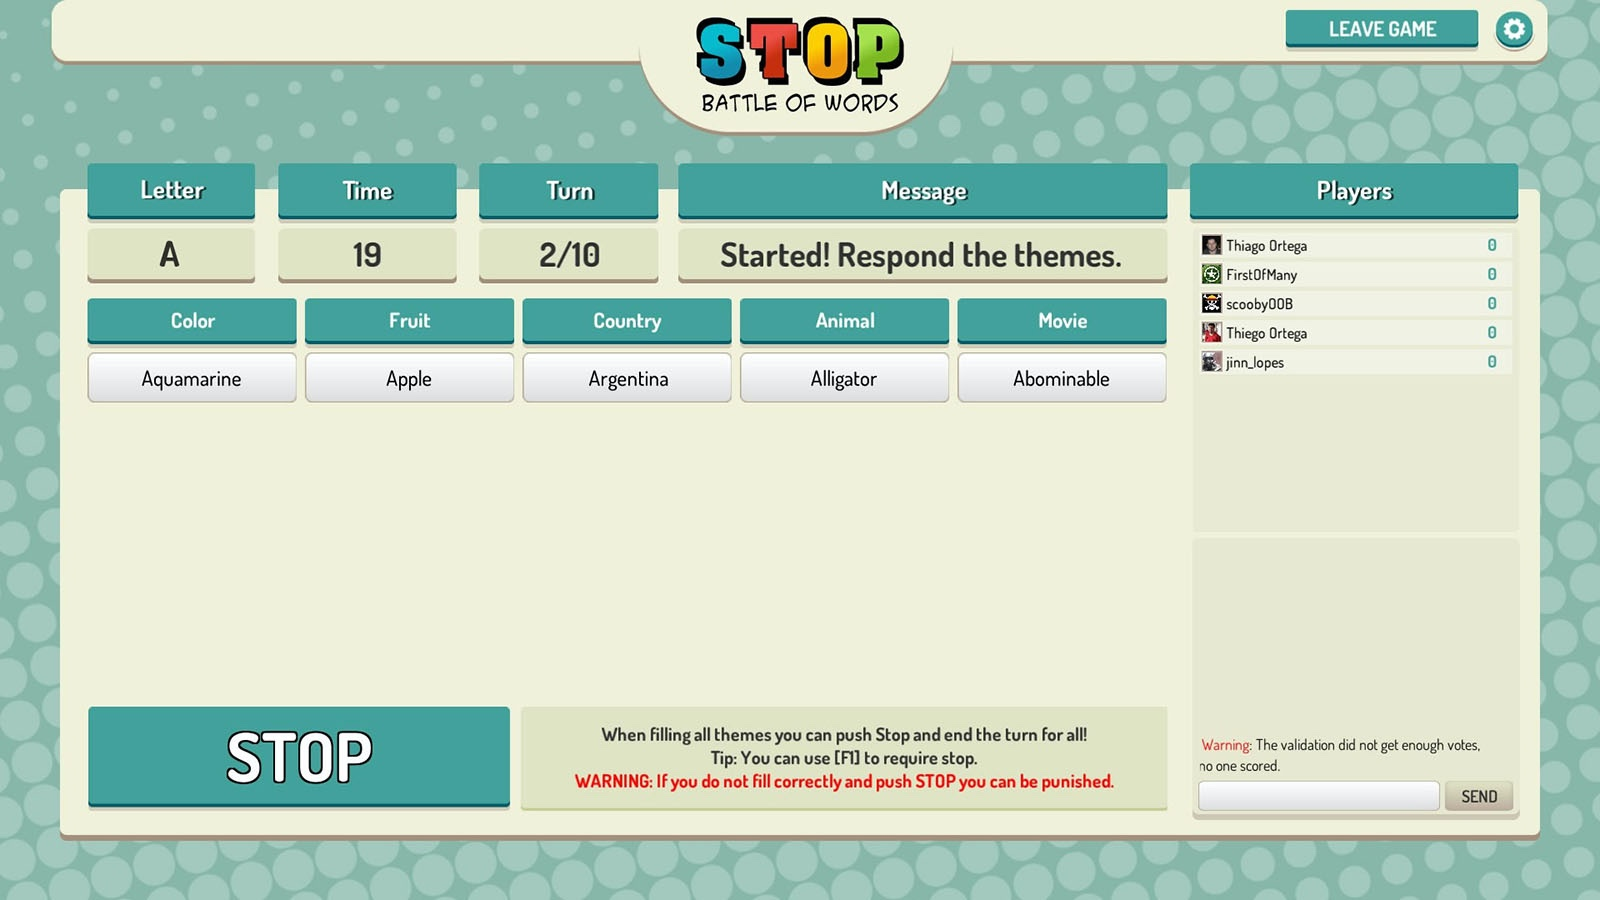 Screenshot of Stop Online Battle of Words